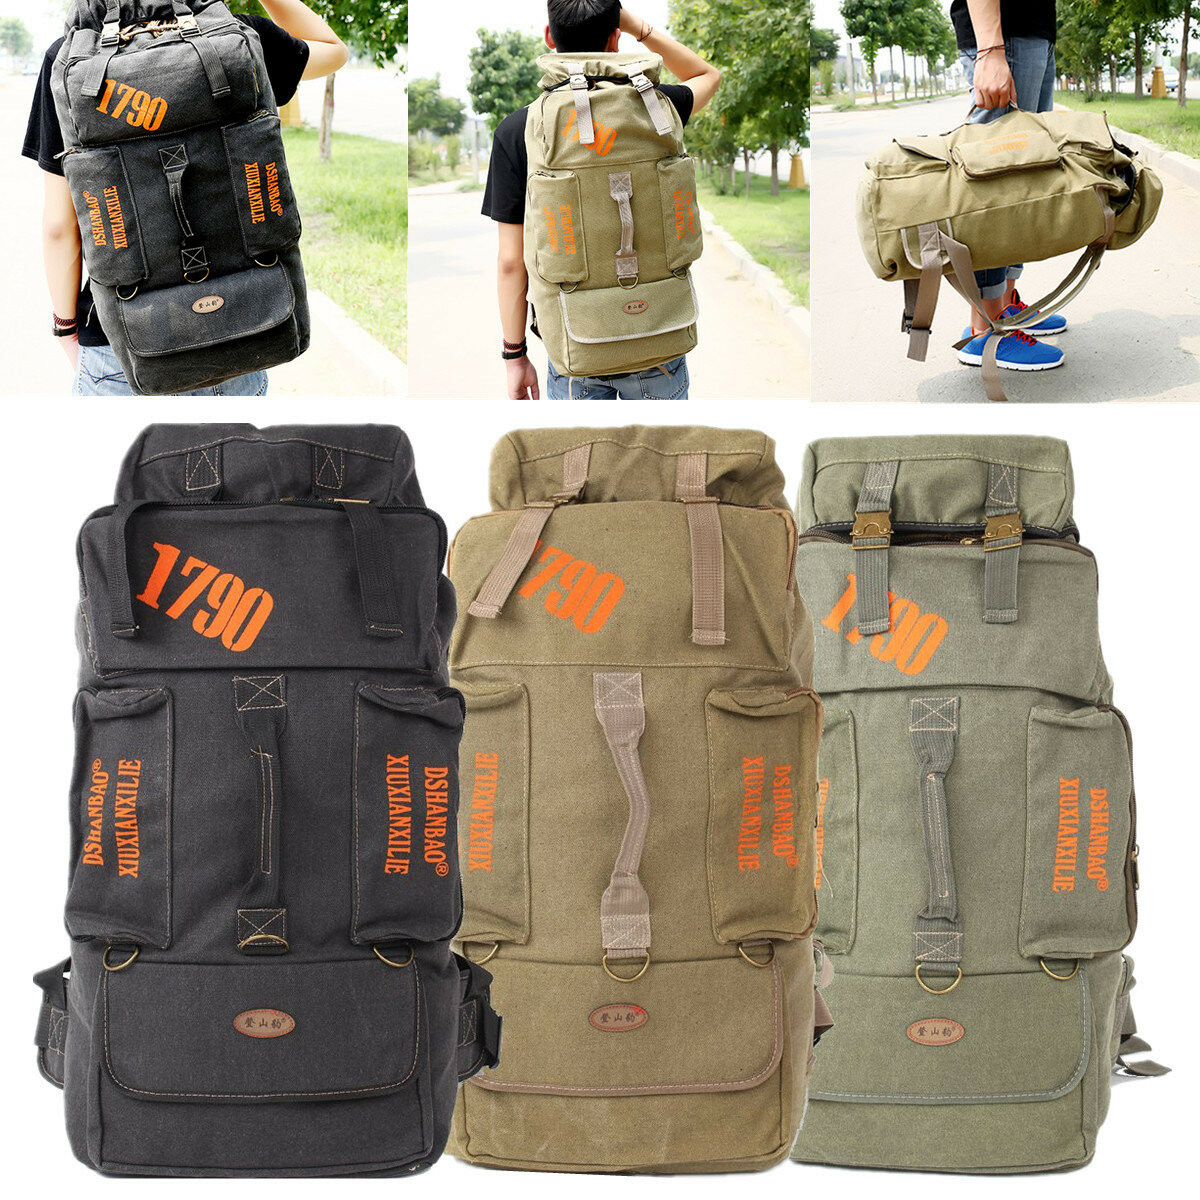 Travel Rucksack 80l Camping Hiking Canvas Backpack Mountaineering Travel Rucksack Trekking Bag